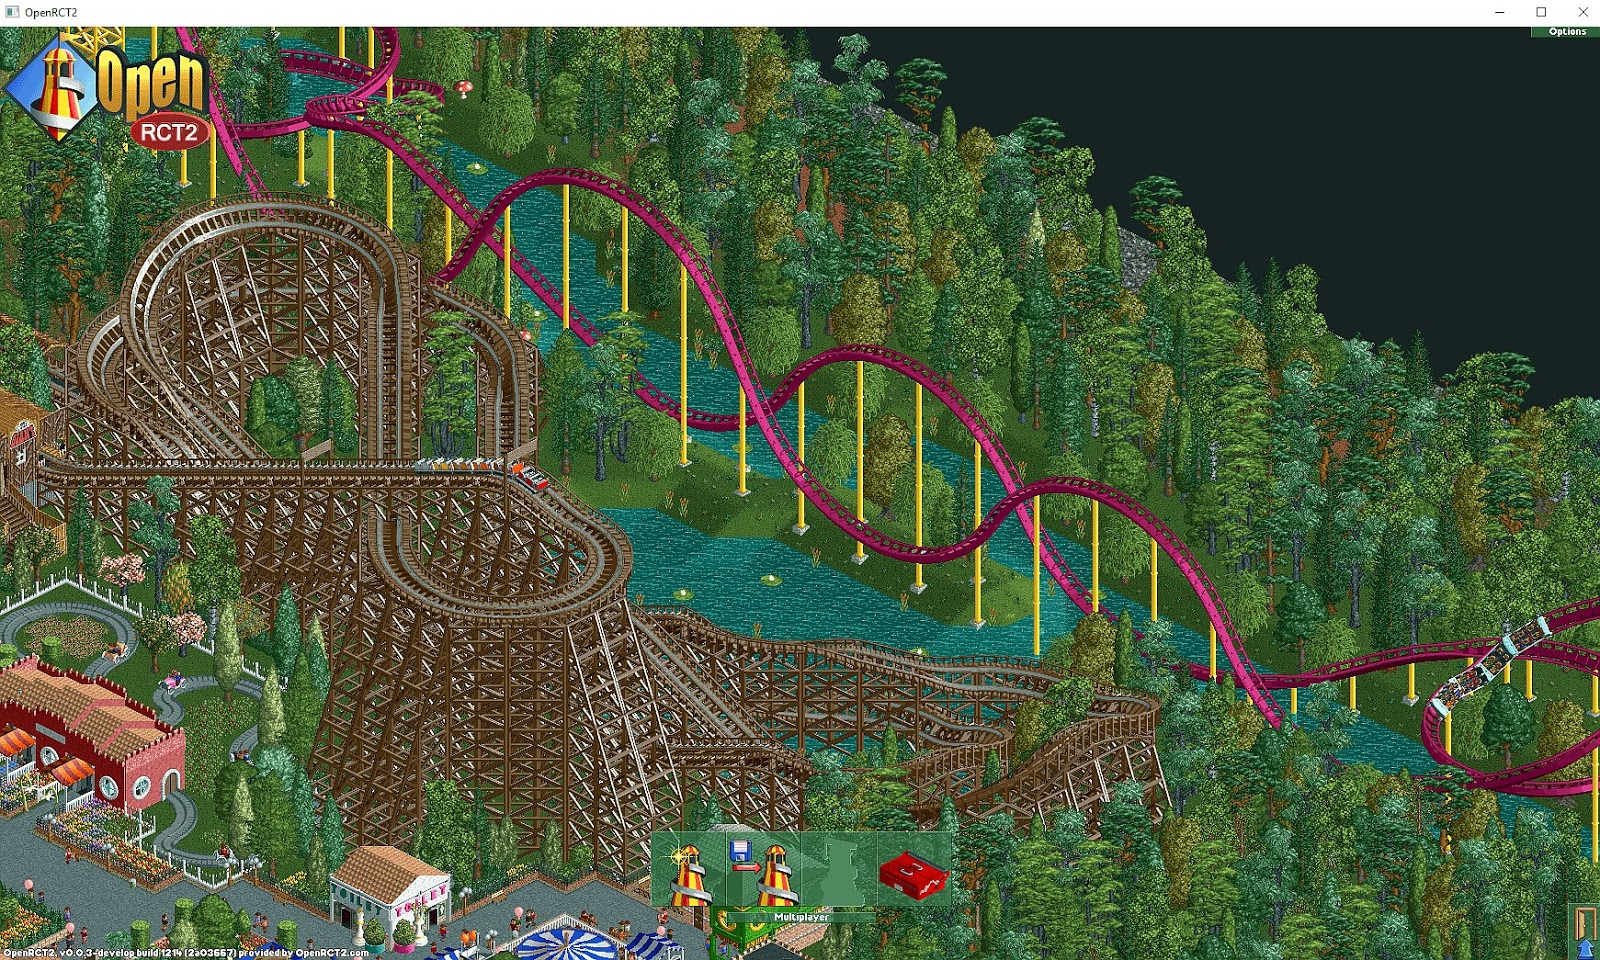 Indie Retro News: OpenRCT2 project - Open-Source adaption of